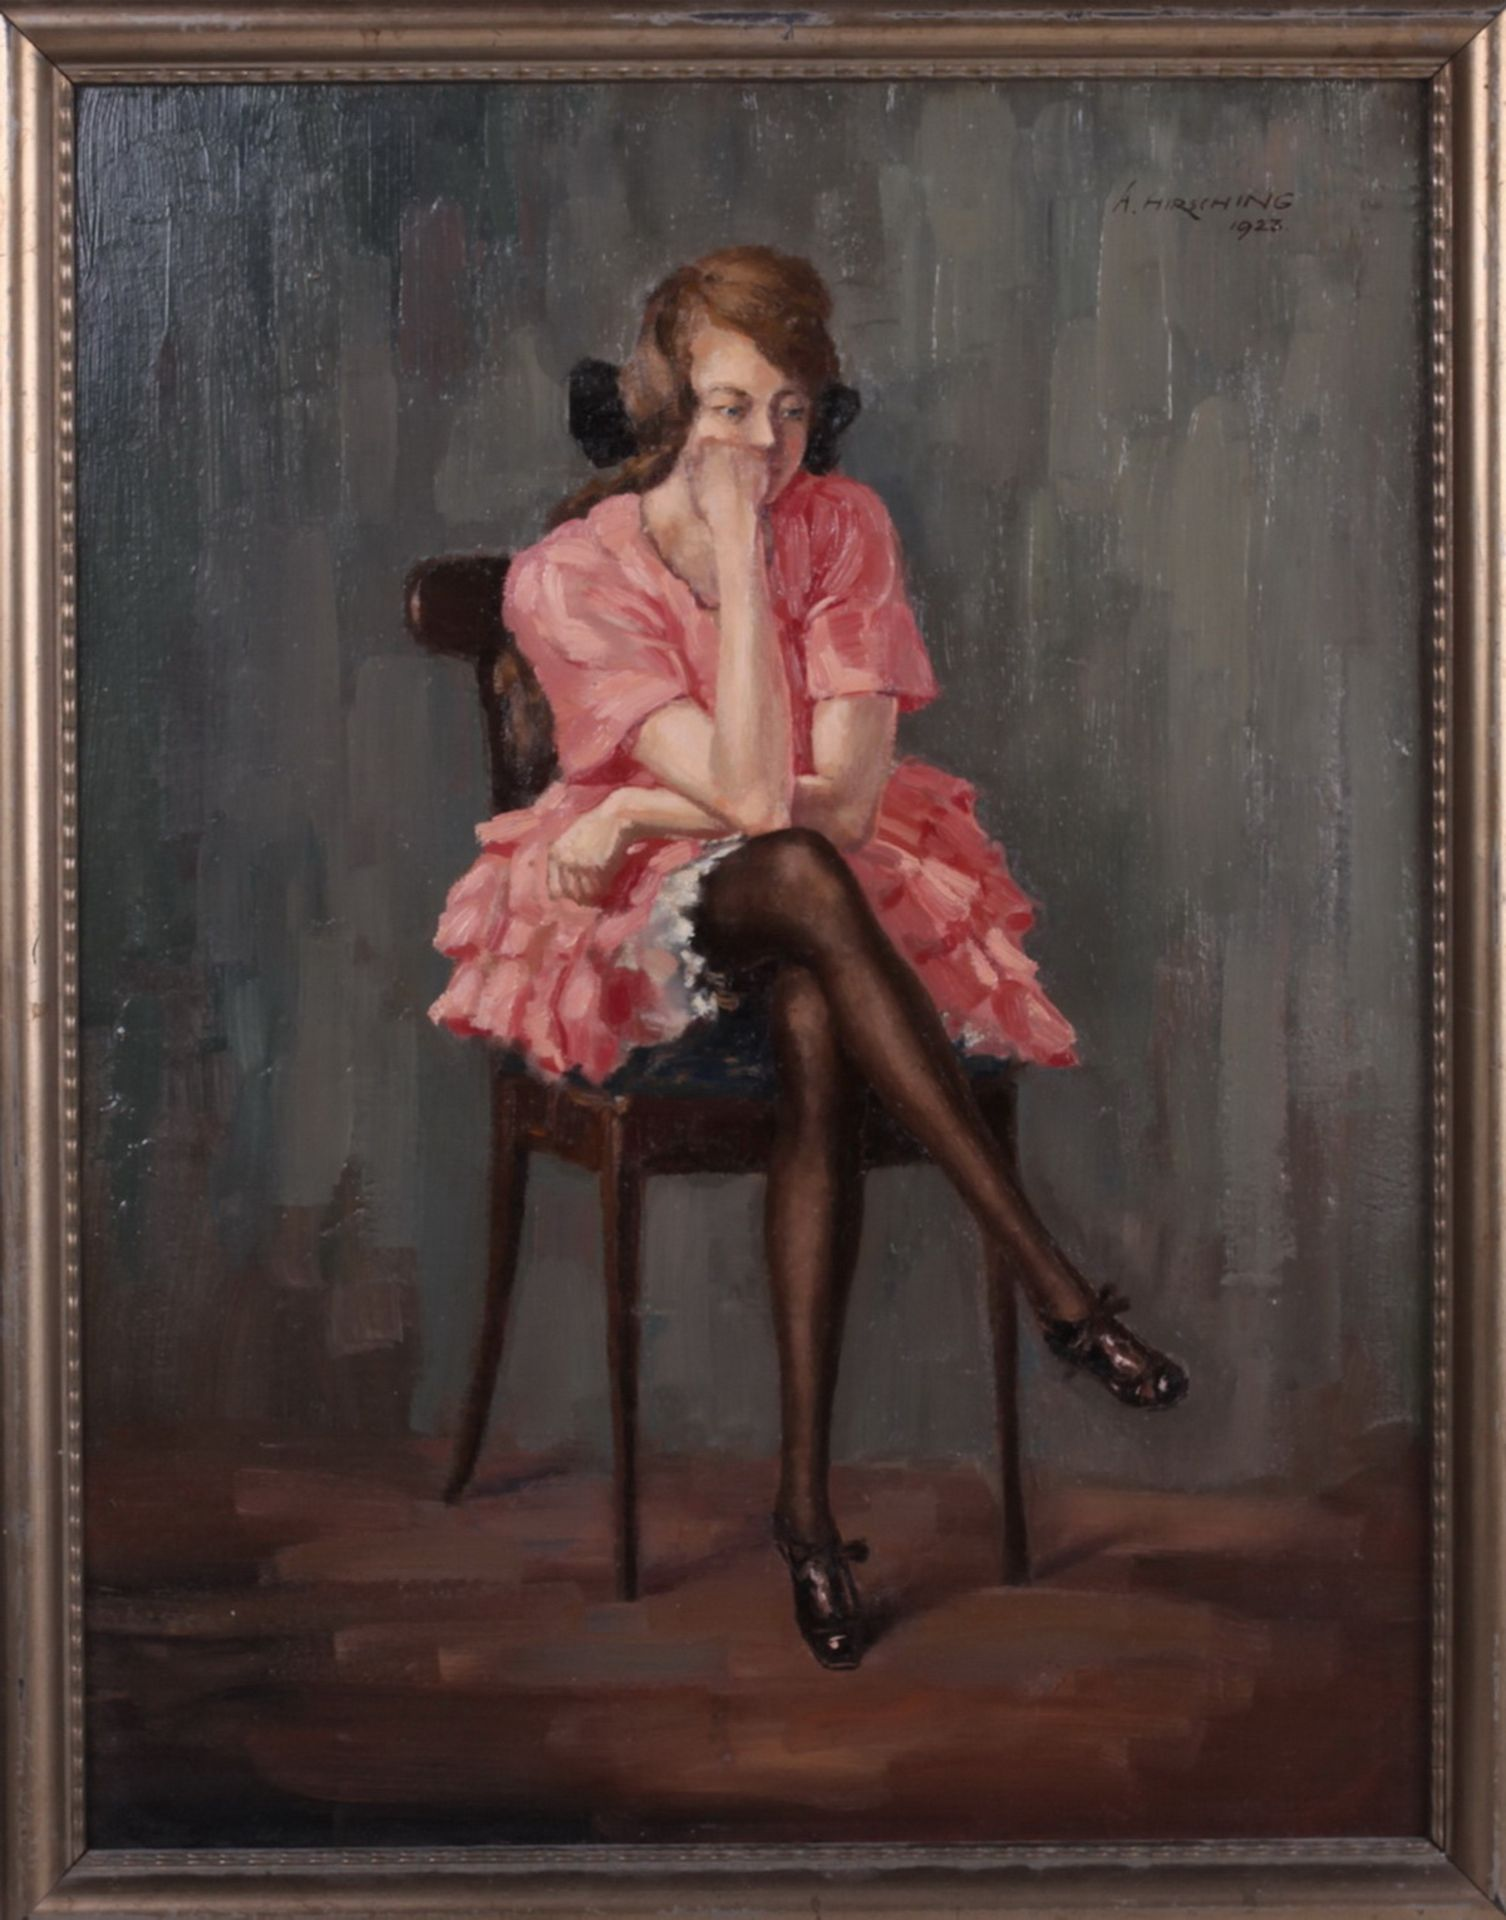 Hirshing, August. Sitting woman. <br>Signed and framed. 1923. Oil on cardboard. 49x38 cm. - Bild 3 aus 4